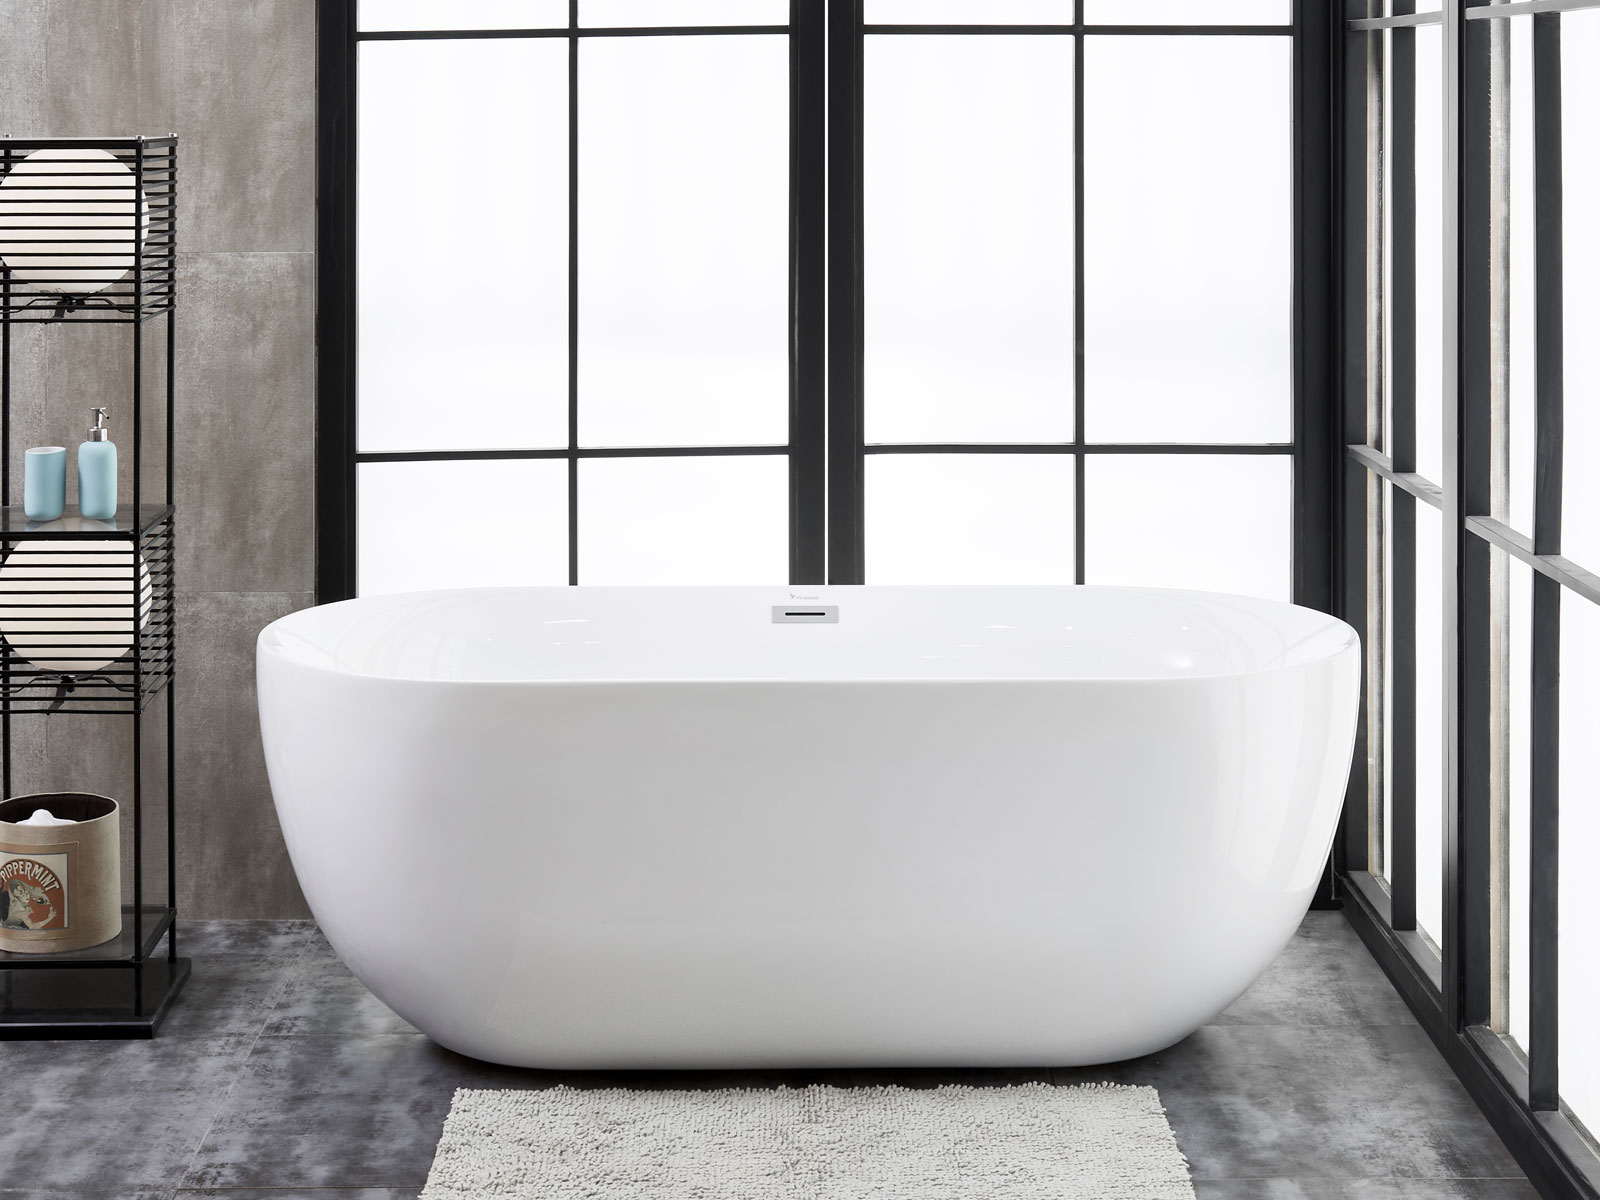 Polaris Home Design Announces Arrival of Freestanding Bathtubs